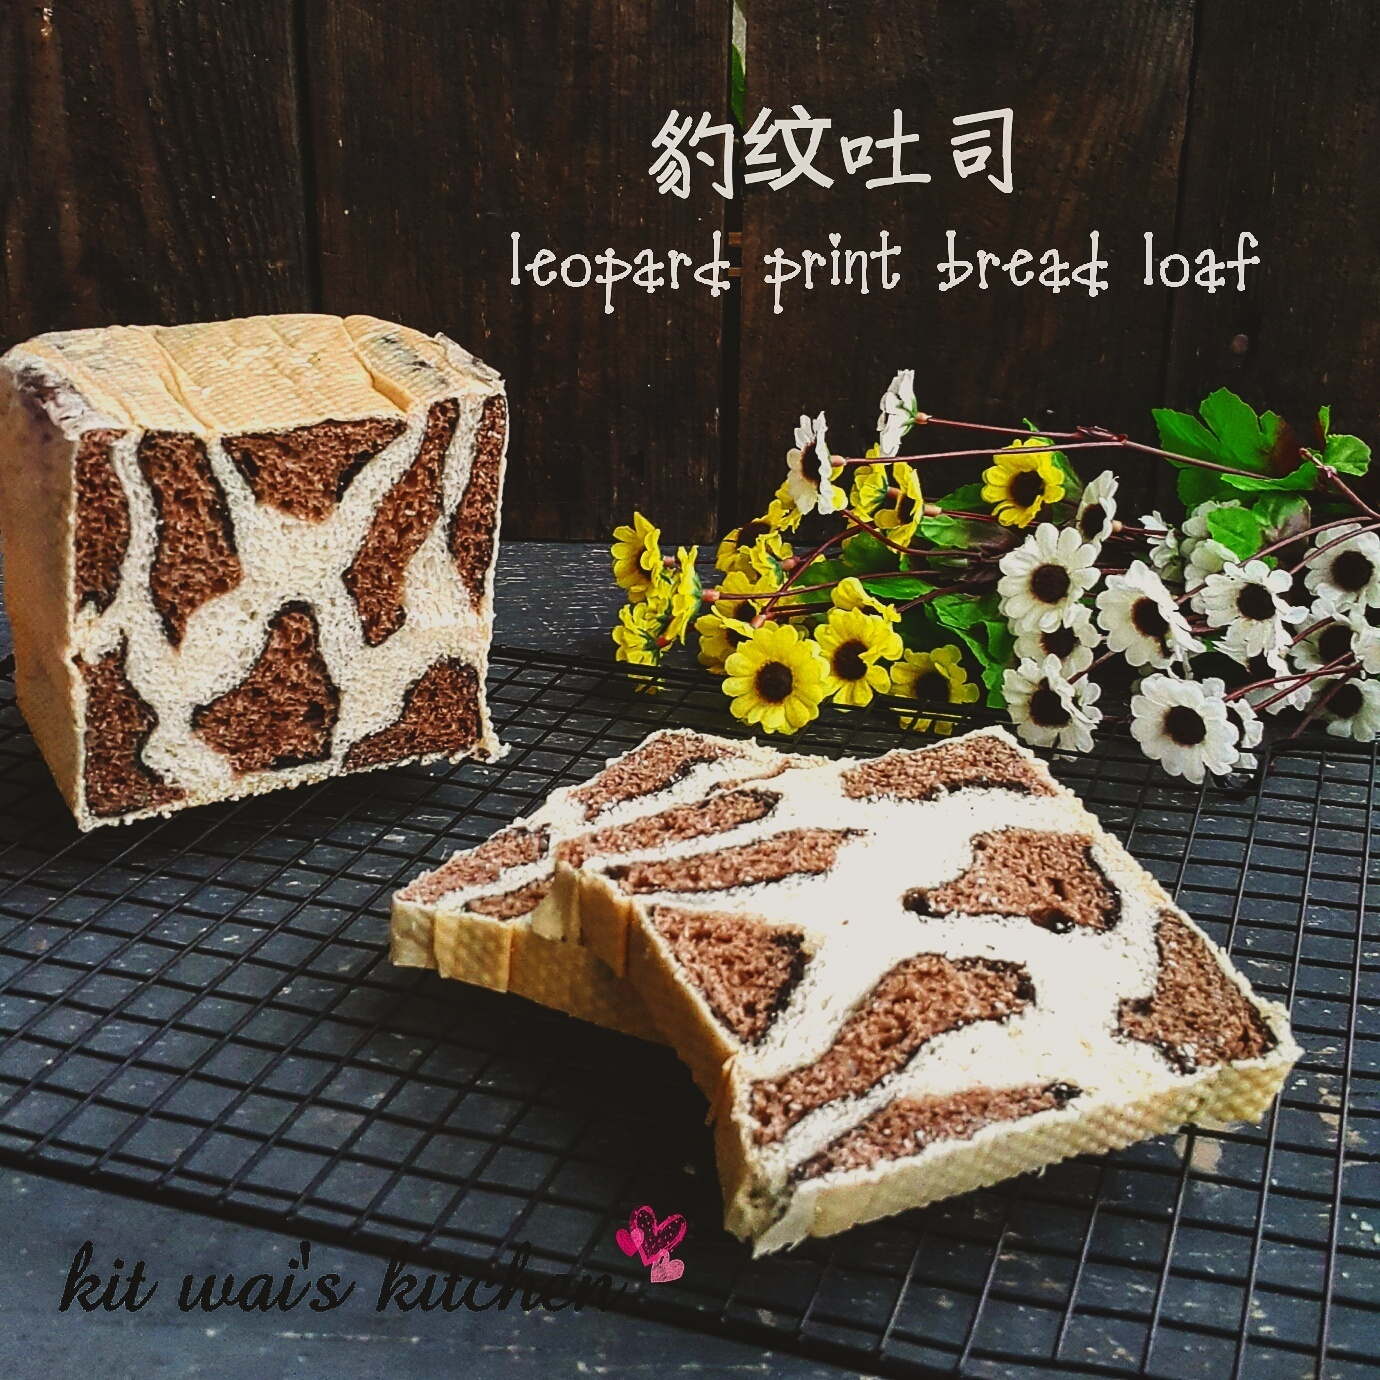 豹纹吐司 ( 17小时中种法 ) ~ Leopard Print Bread Loaf  (17hours Sponge Dough method )